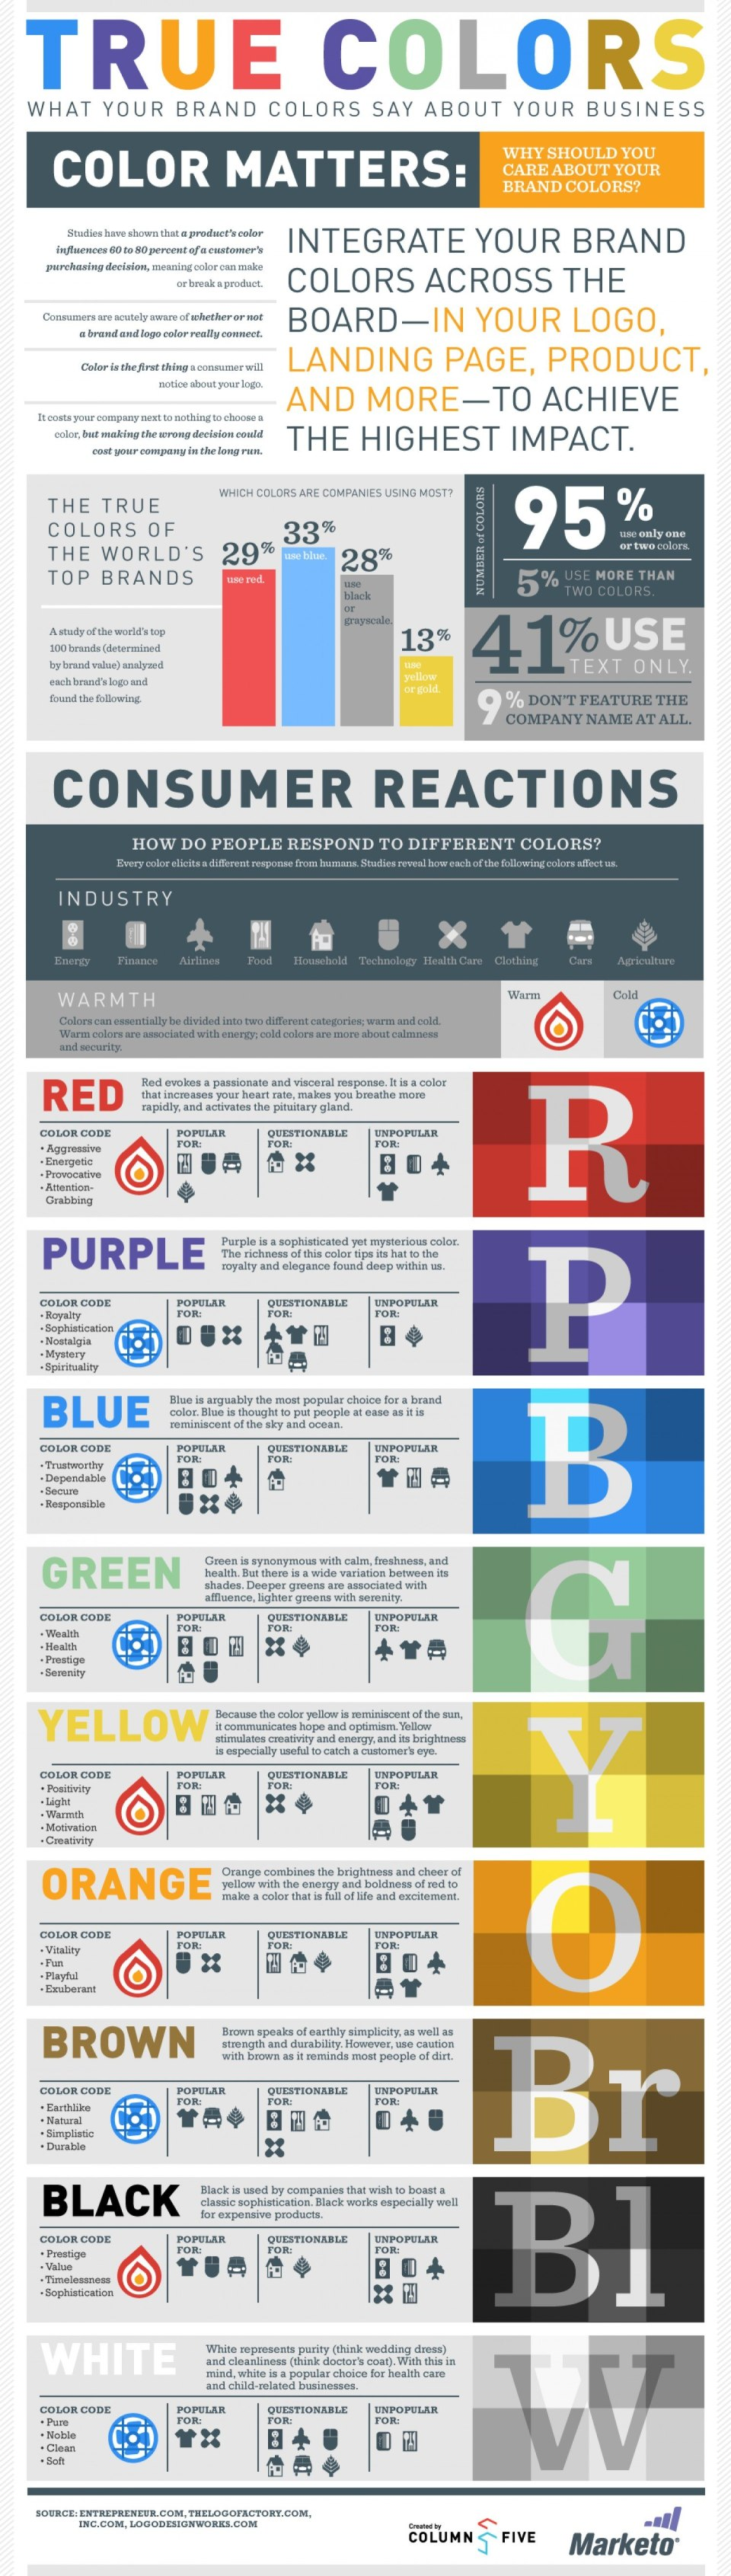 true-colors-what-your-brand-colors-say-about-your-business dwaipayan chakraborty